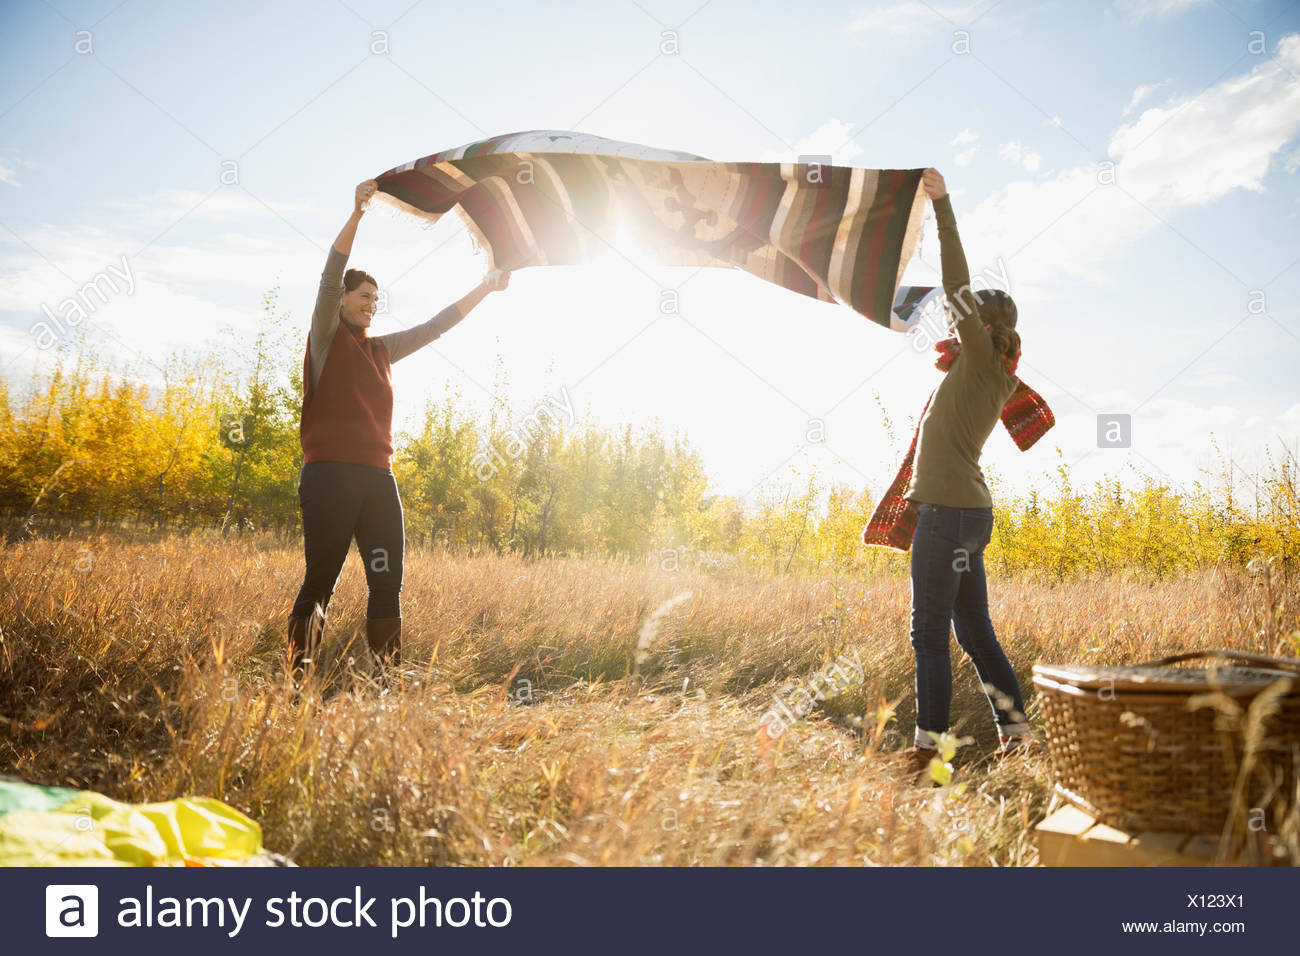 Mother and daughter shaking picnic blanket in sunny field - Stock Image